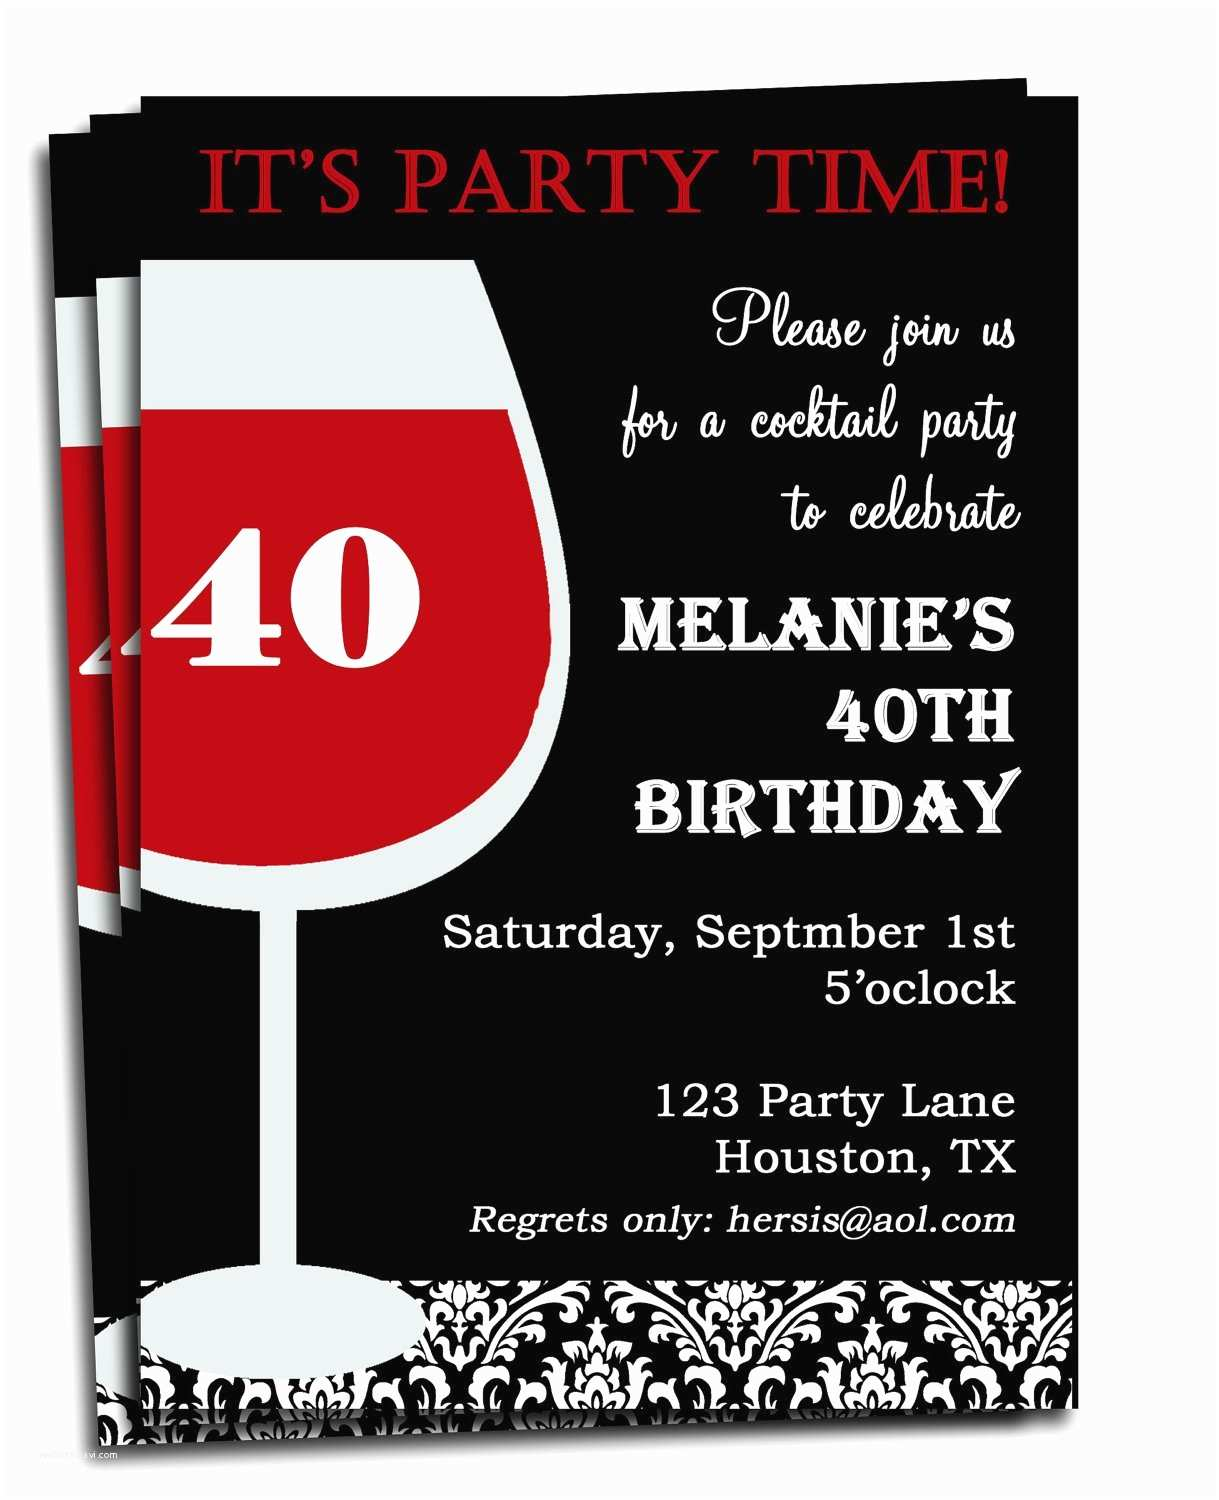 Customized Birthday Invitations Birthday Invitations for Adults